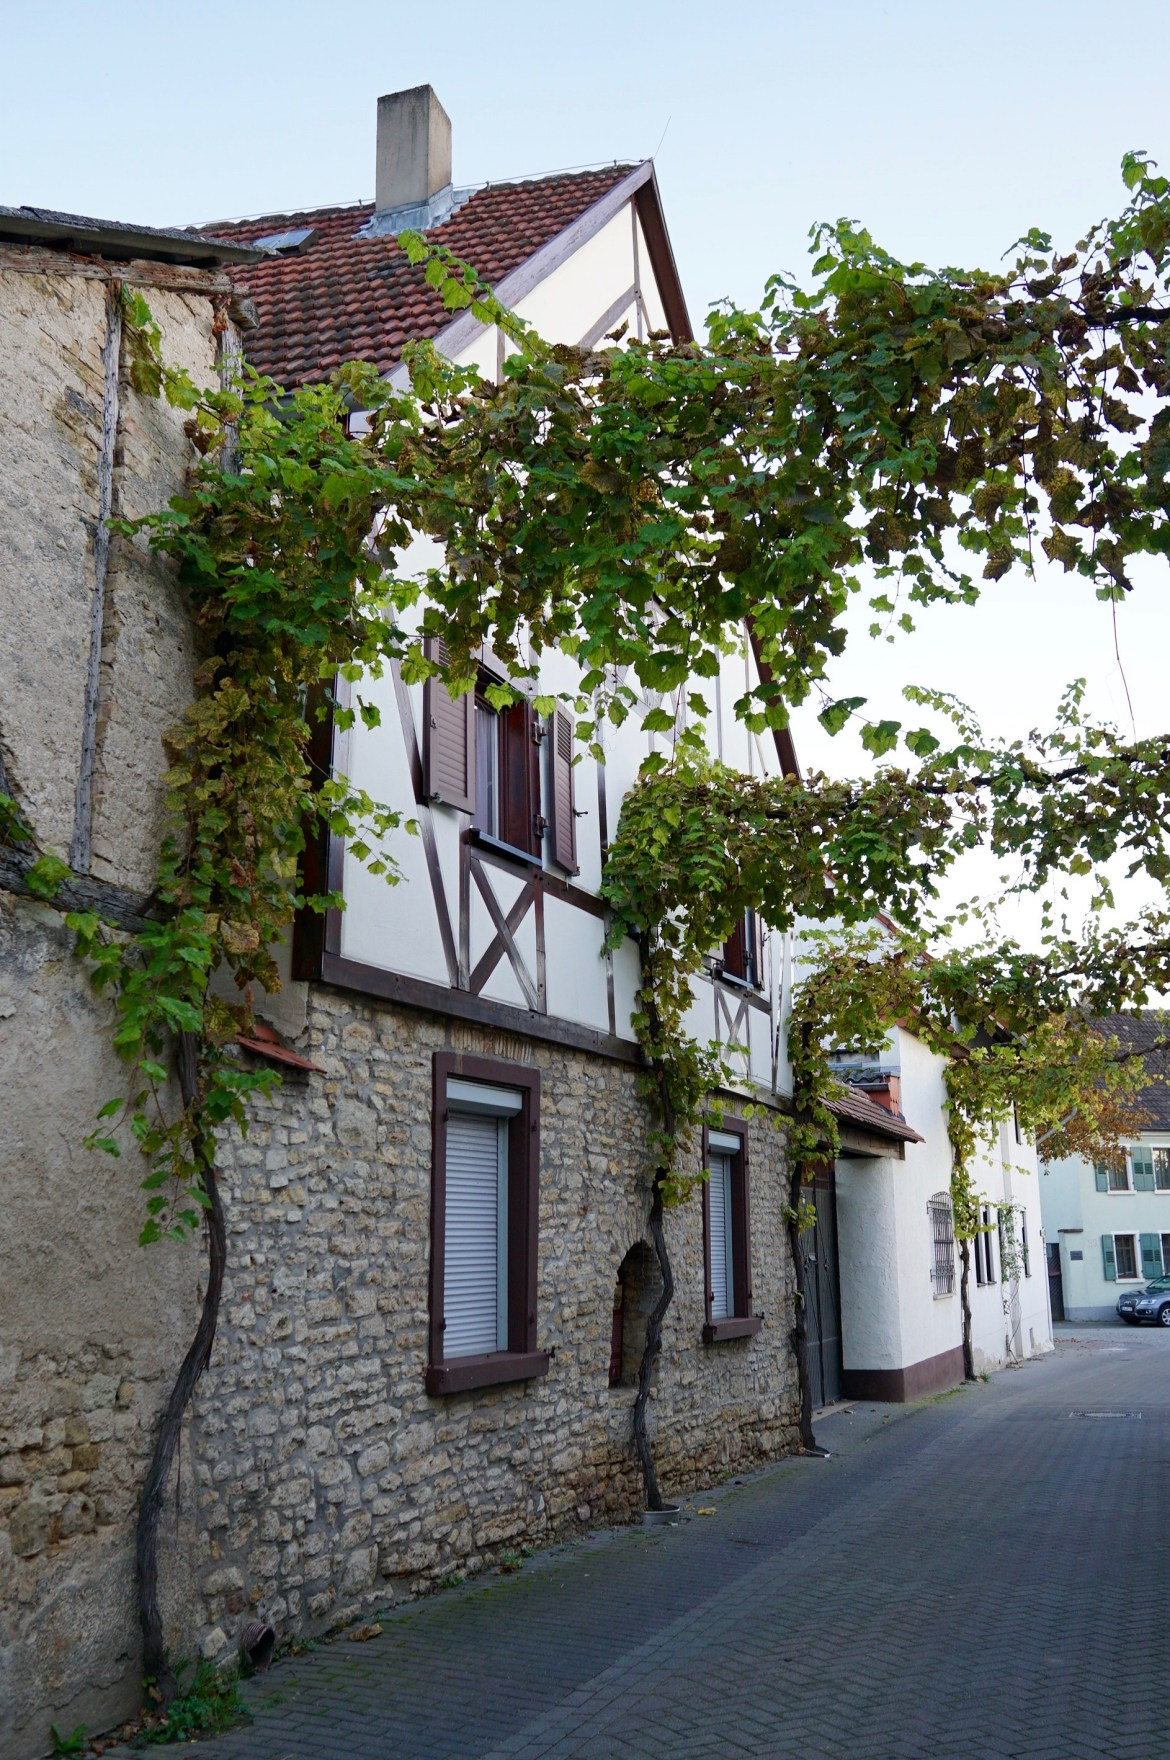 A street of half-timbered houses and hanging vines in Ingelheim-am-Rhein